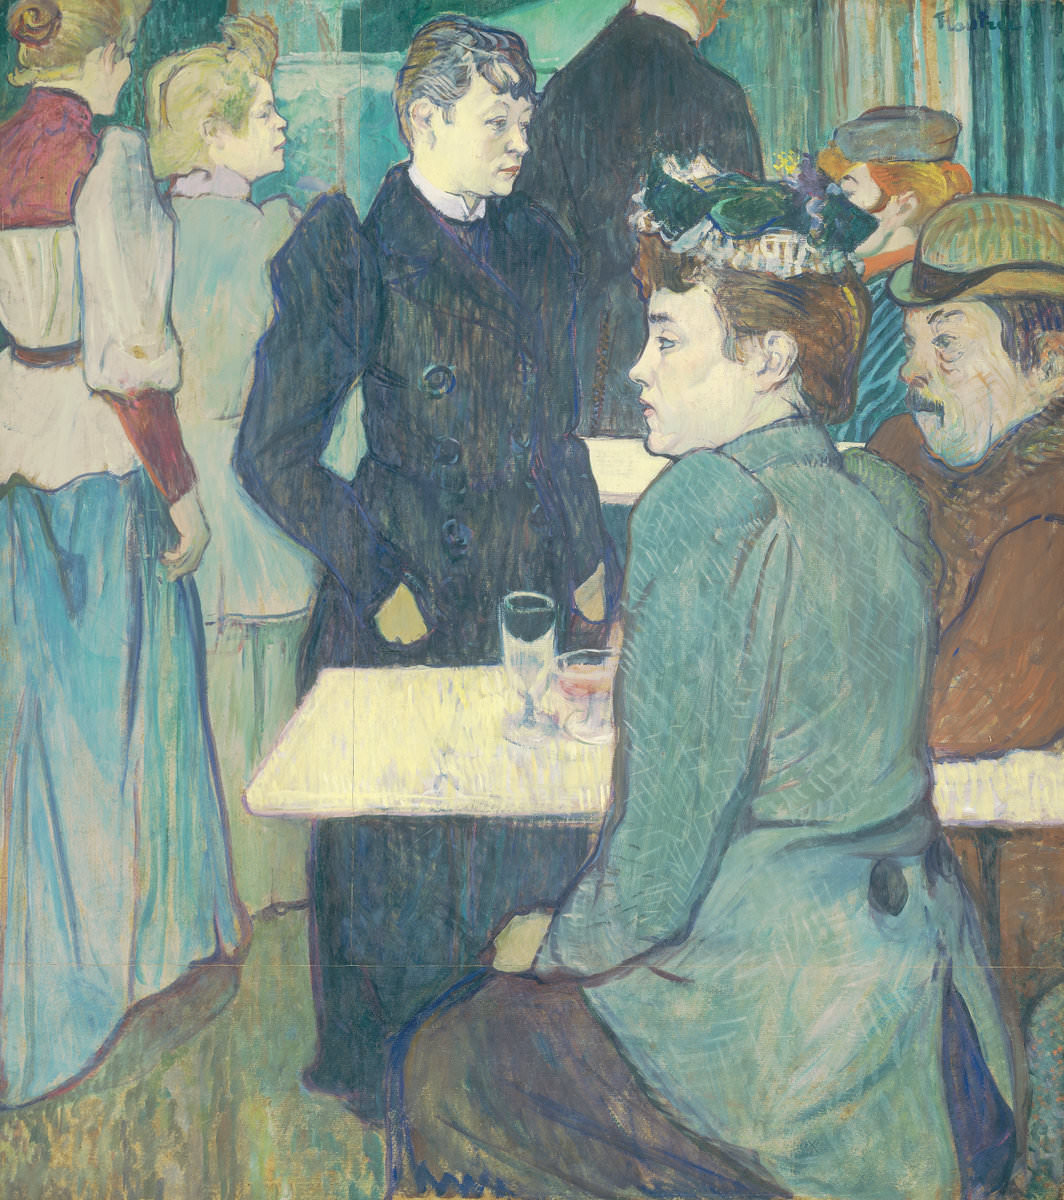 Feige. 10 -A Ecke an der Moulin De La Galette, Henri de Toulouse-Lautrec, 1892. National Gallery of Art, Washington. Chester Dale Collection.